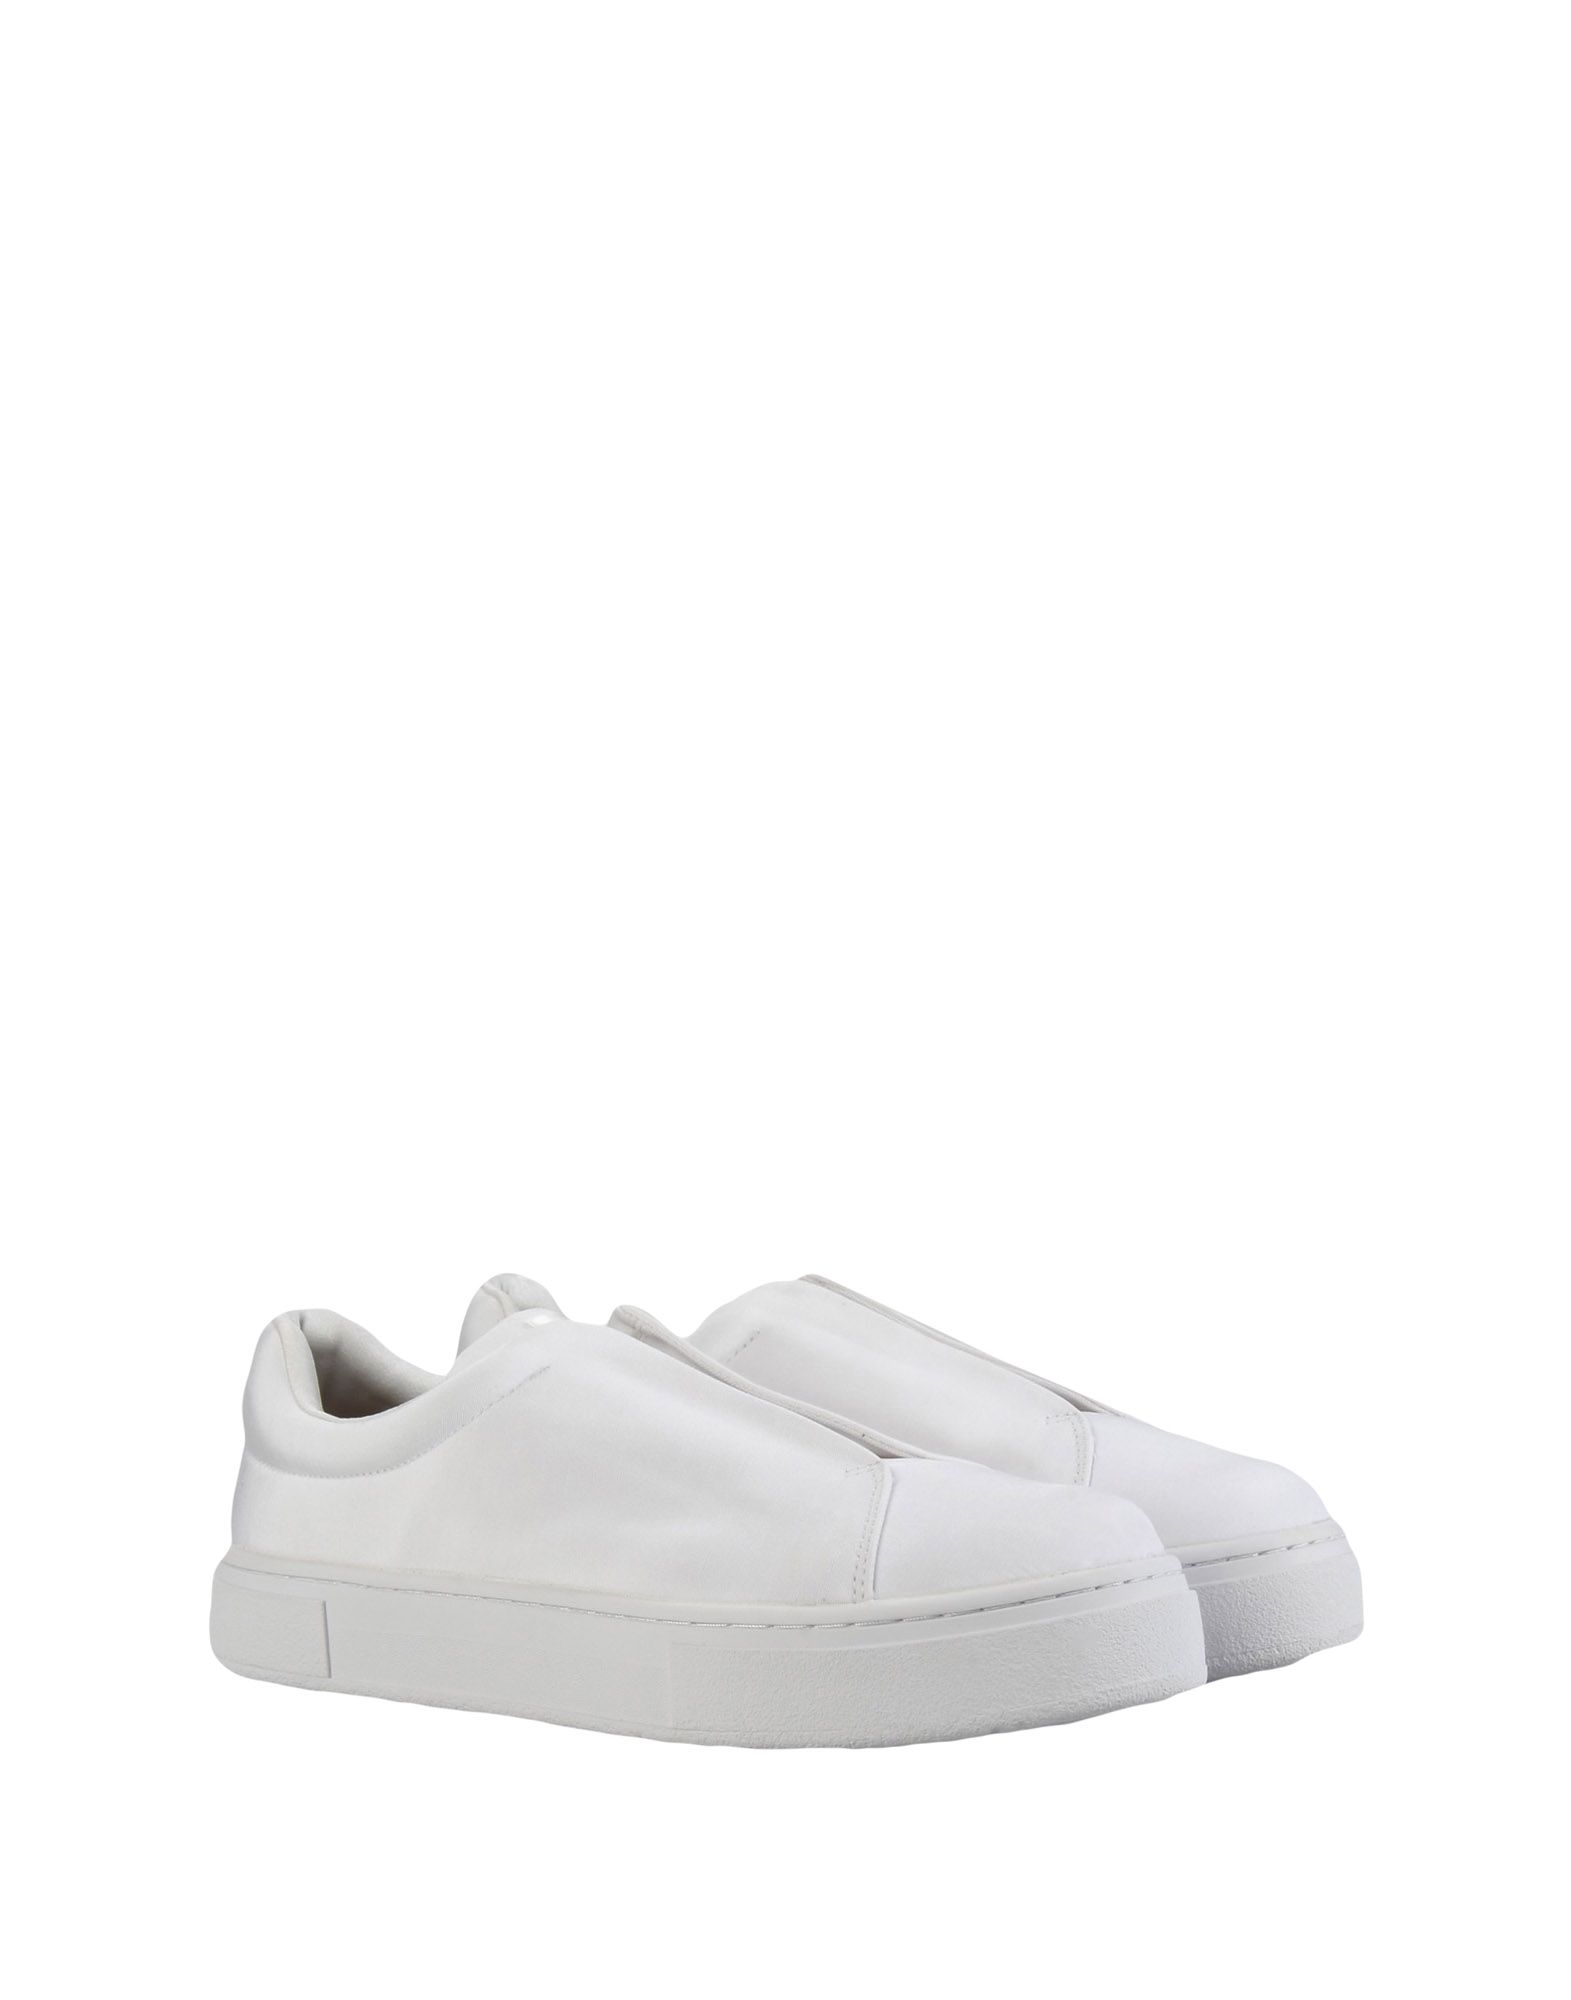 ... Sneakers Eytys Doja S-O Fabric - Homme - Sneakers Eytys sur